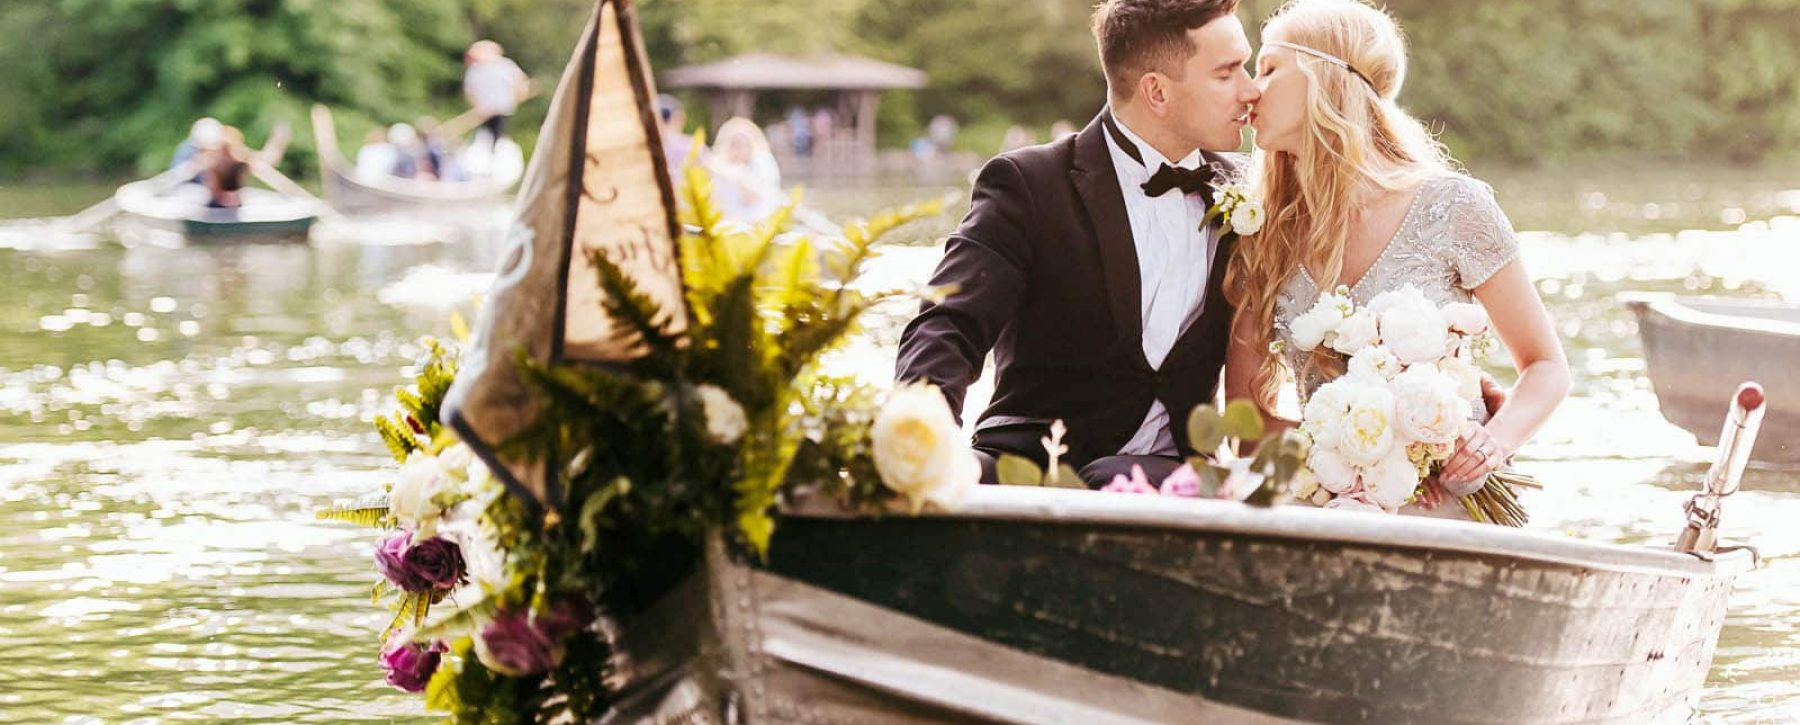 New York Central Park Rowboat Elopement Portrait